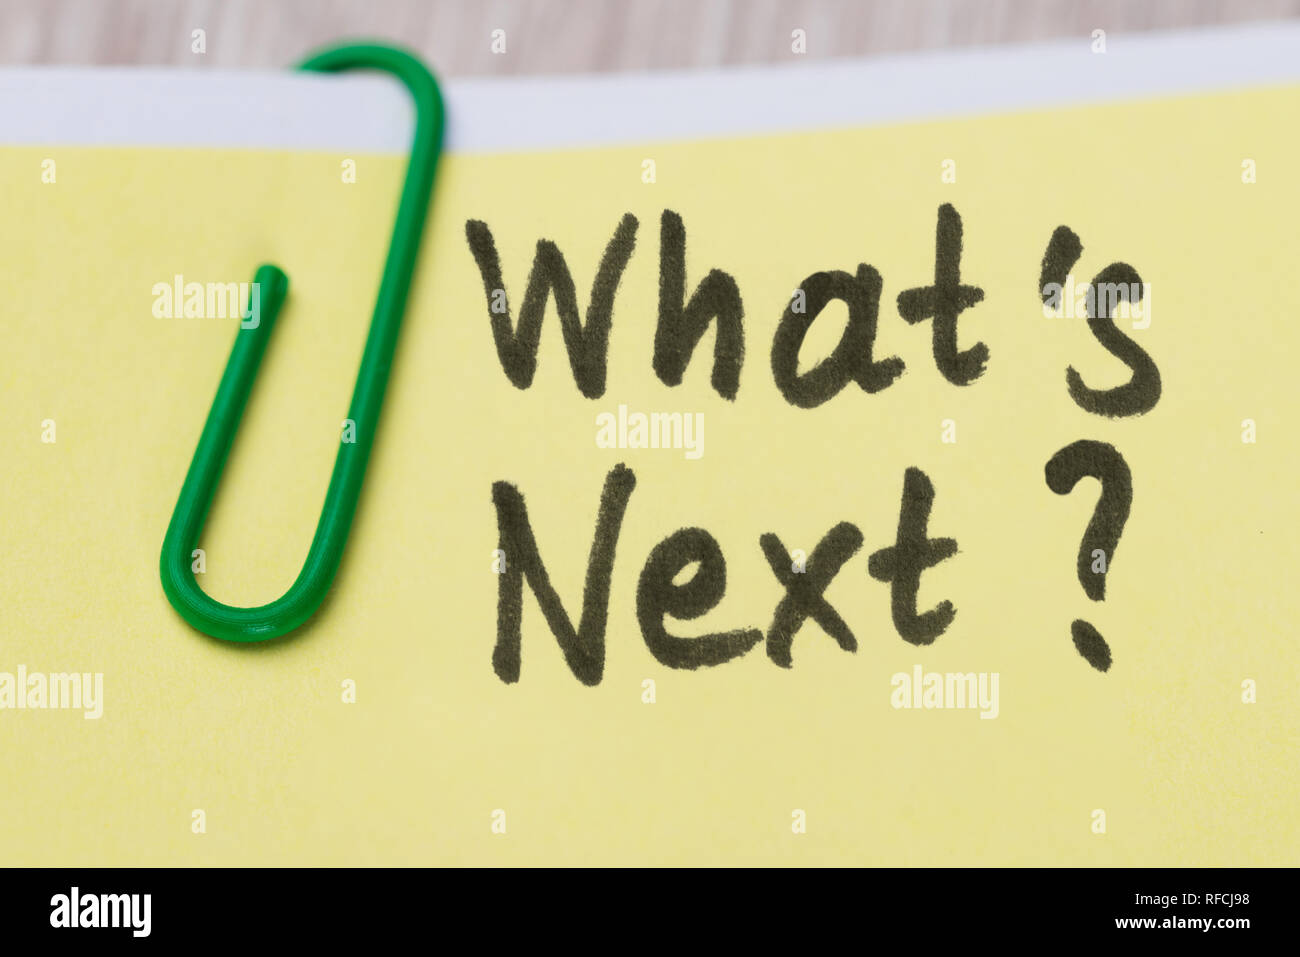 Whats Next High Resolution Stock Photography and Images - Alamy